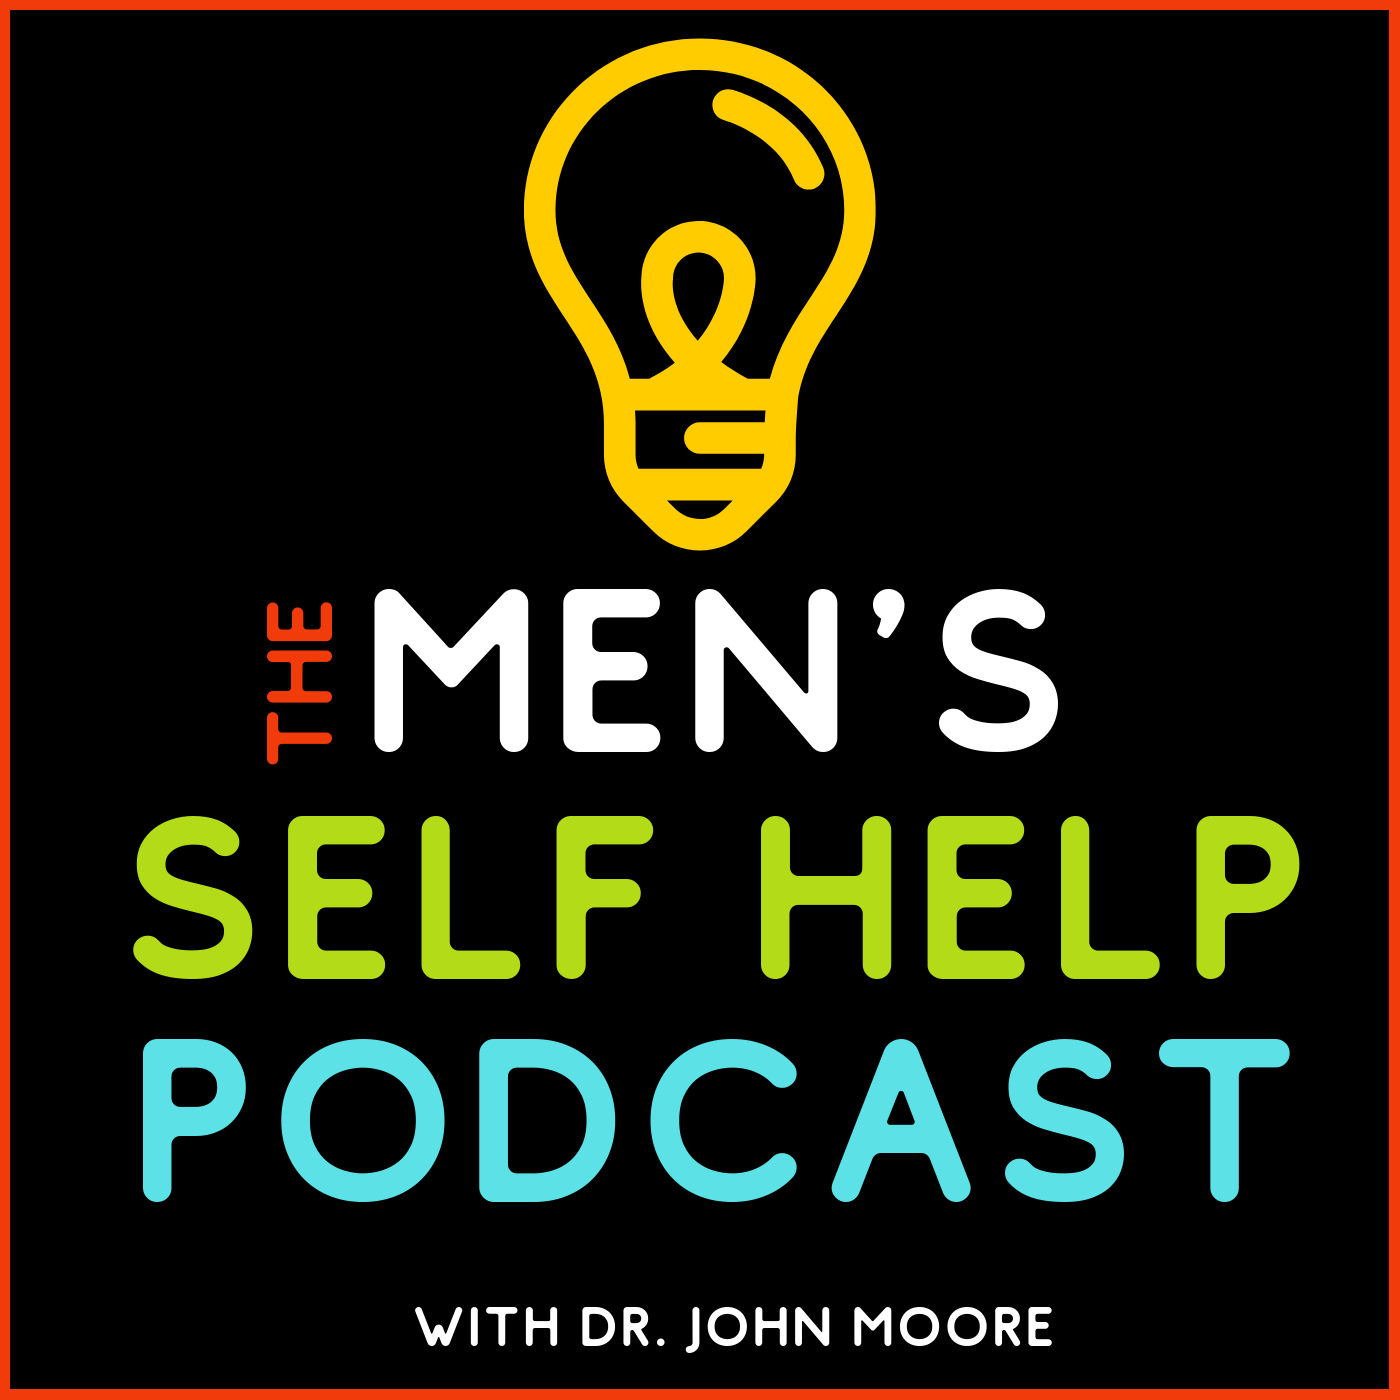 THE MEN'S SELF HELP PODCAST show art